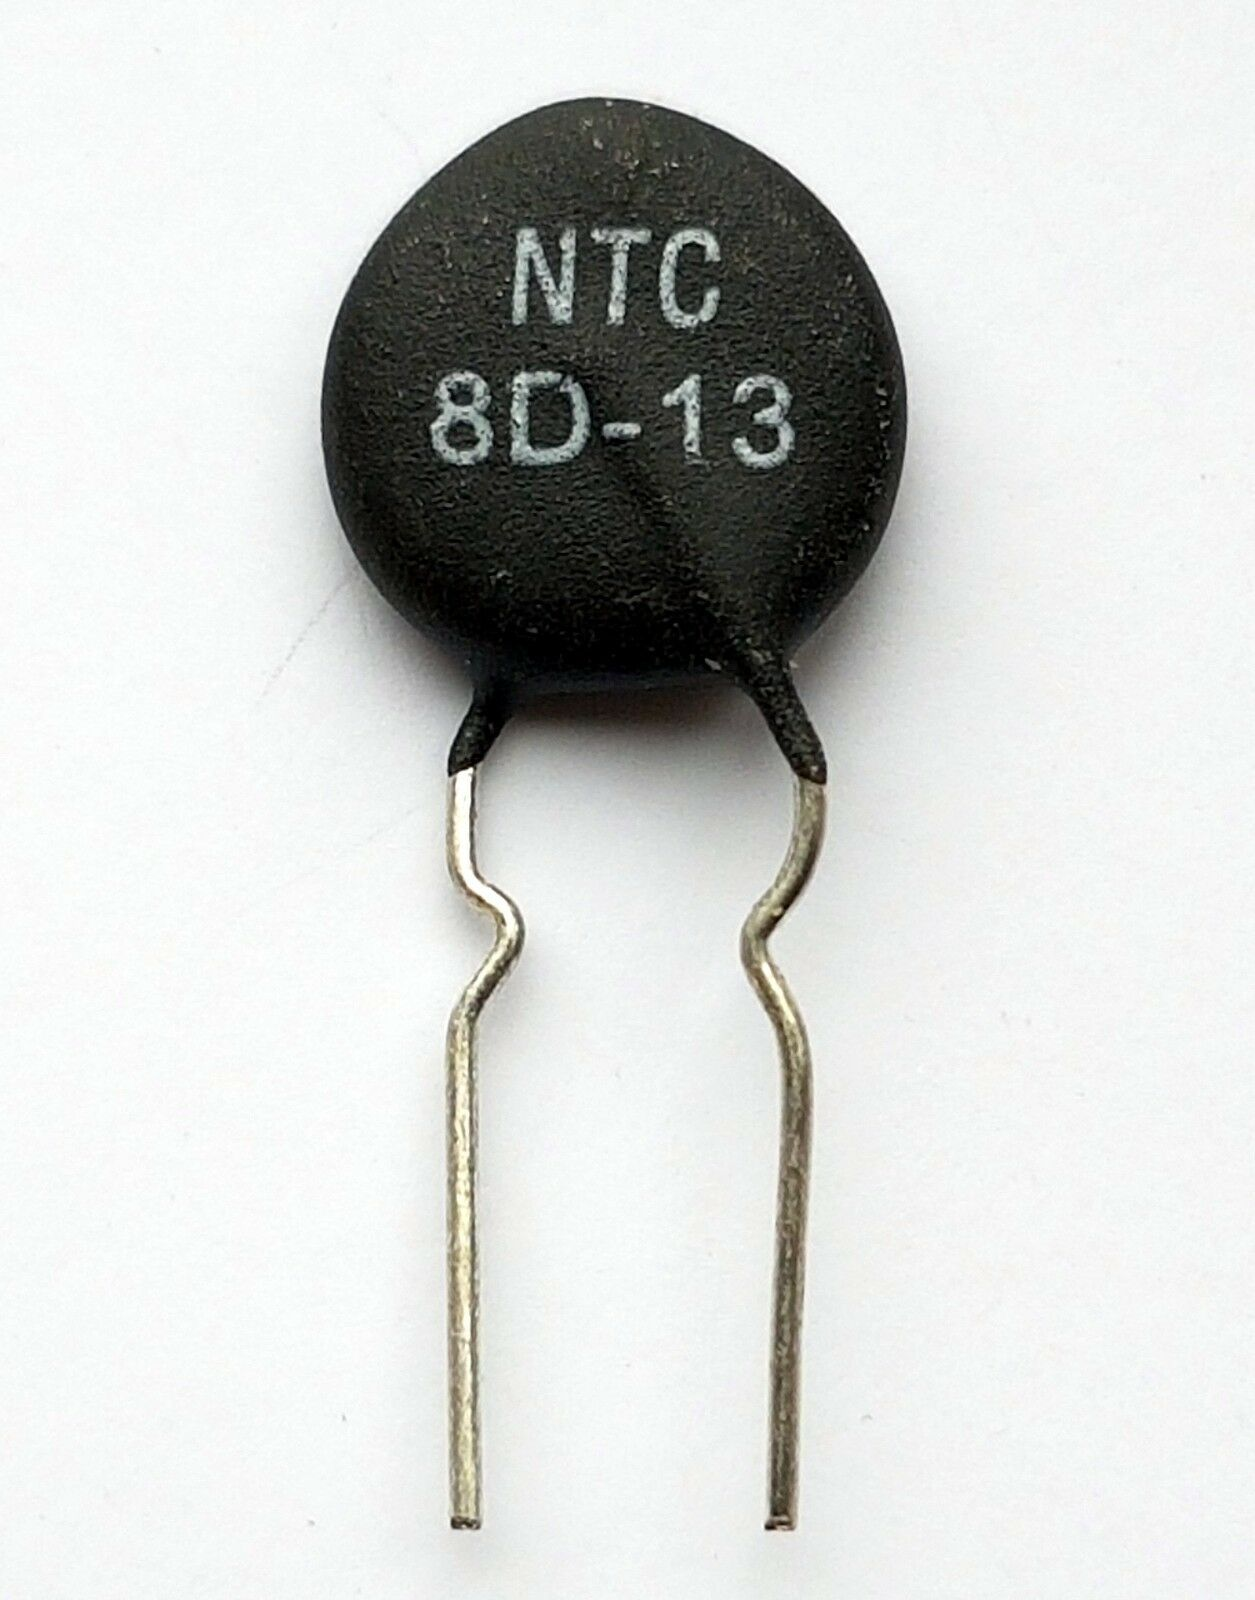 2 X Ntc 8d 13 Inrush Current Limiter Power Thermistor 8 Ohm 4amp Selection Criteria Steady State Of 3